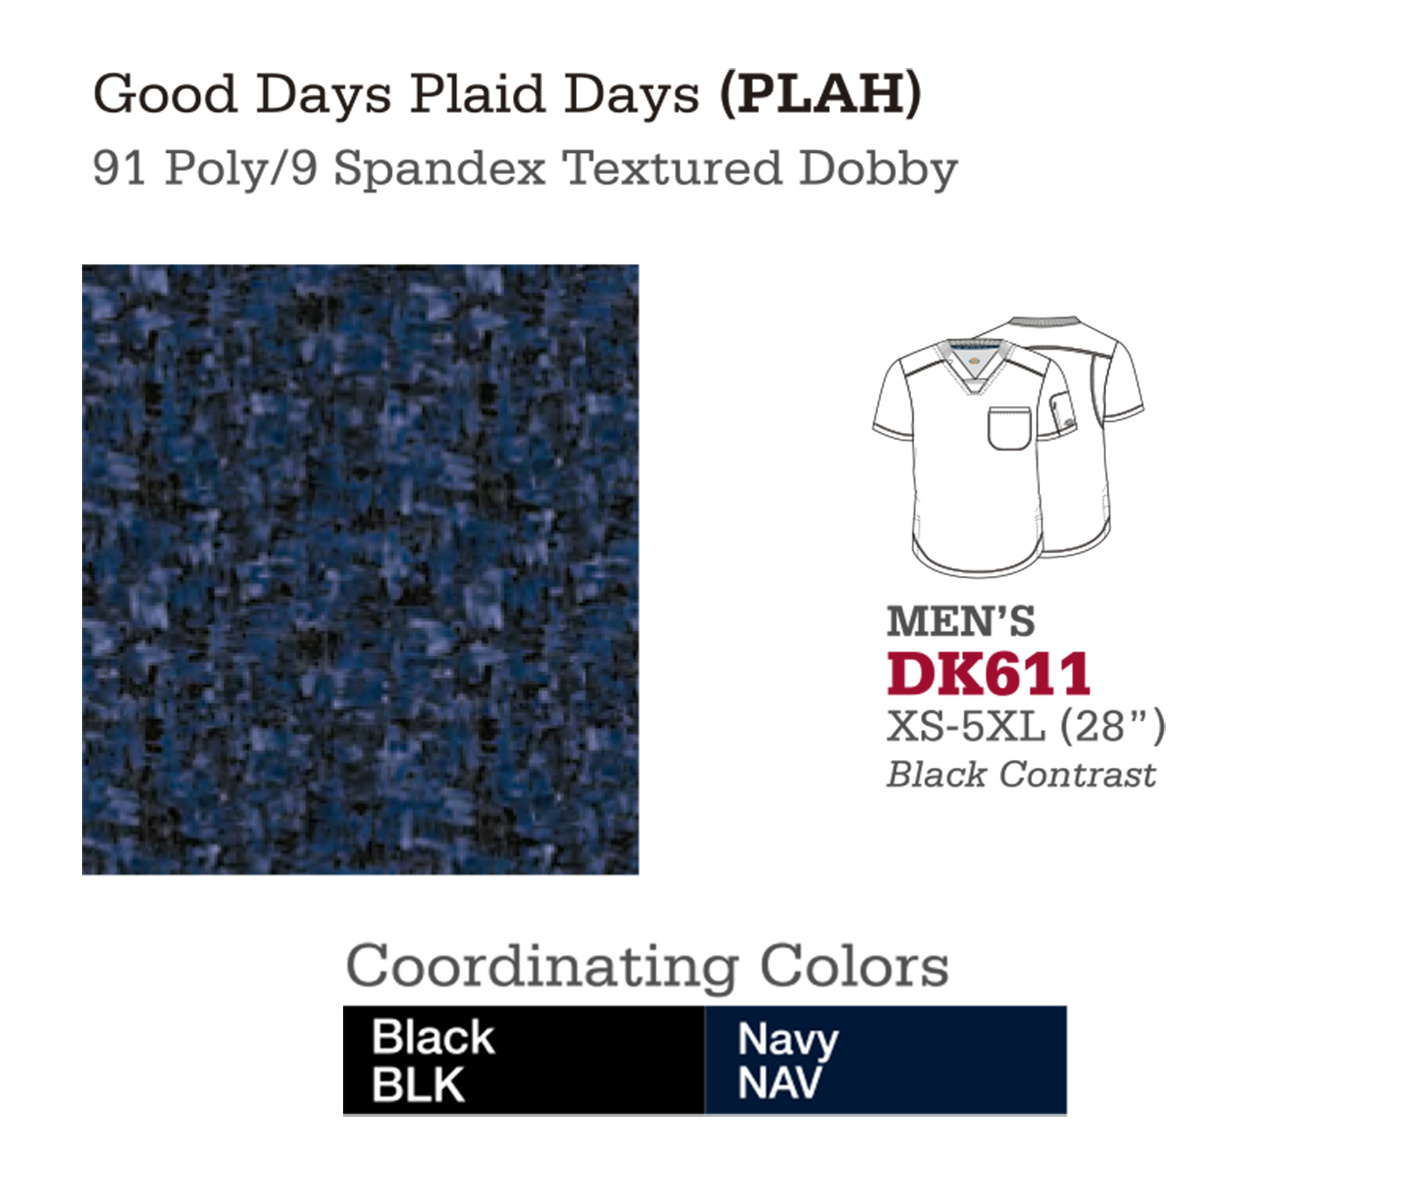 Good Day Plaid Days. DK611.